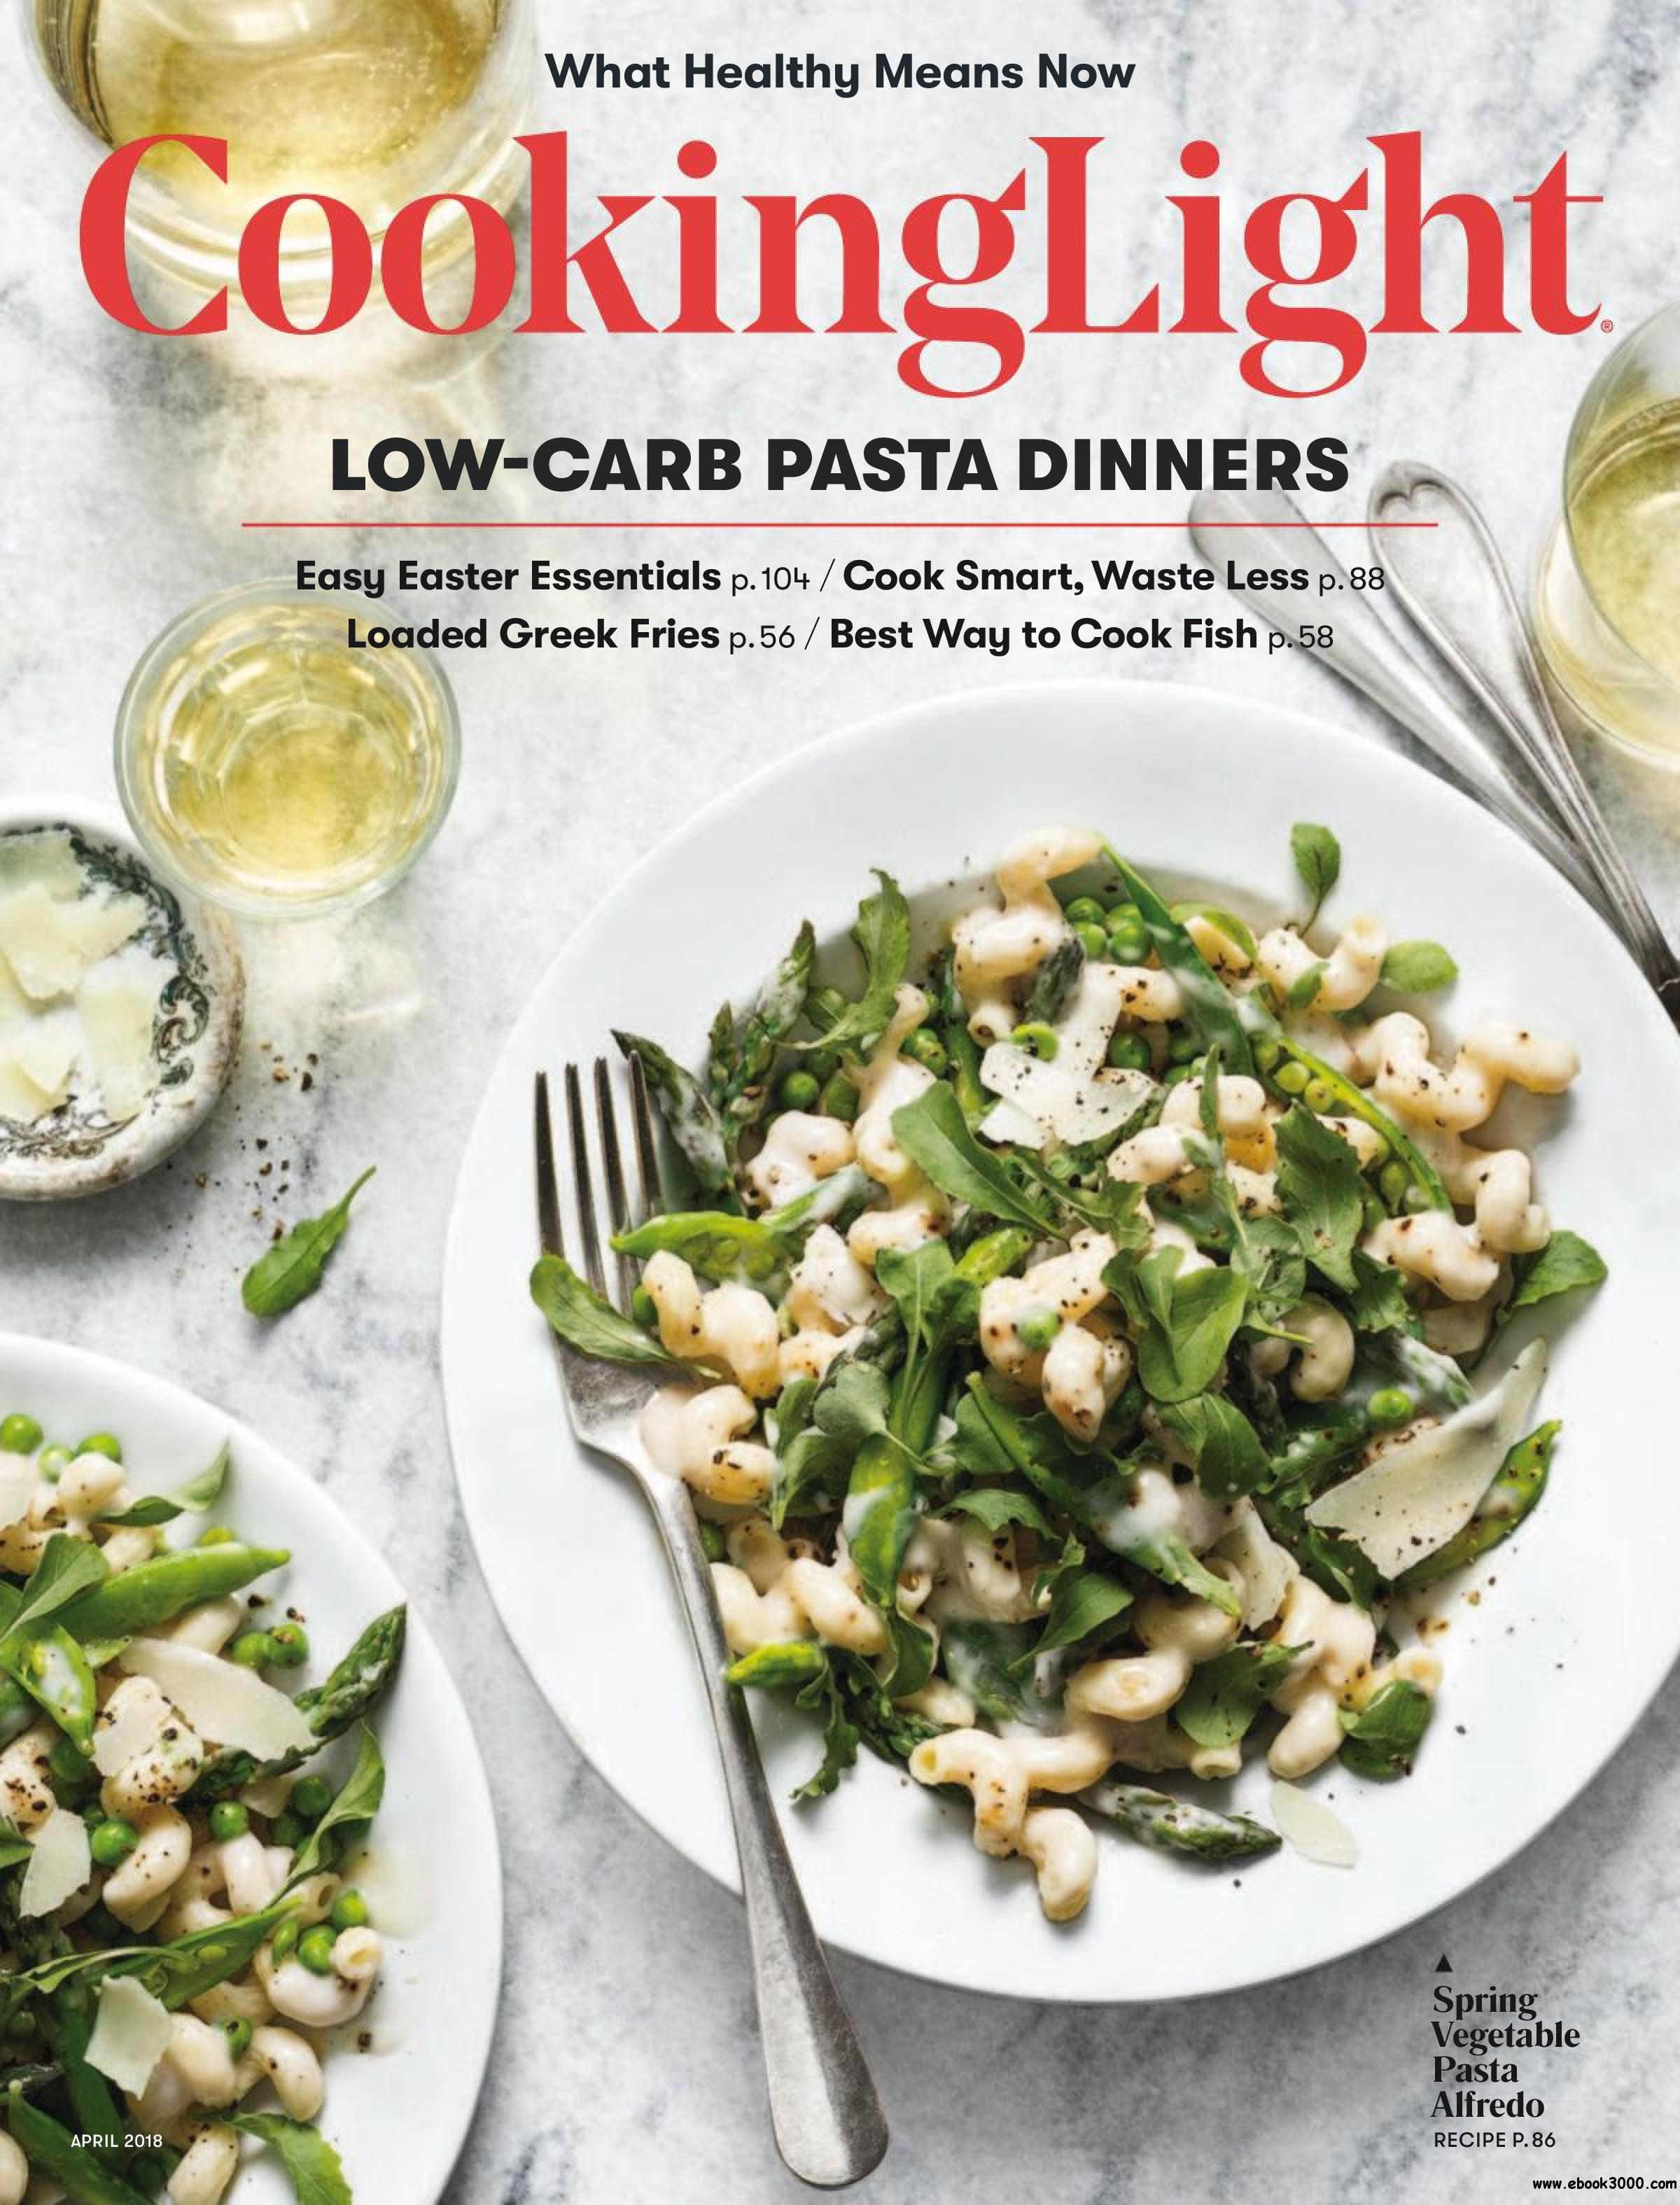 Cooking light april 2018 free ebooks download cooking light april 2018 forumfinder Image collections